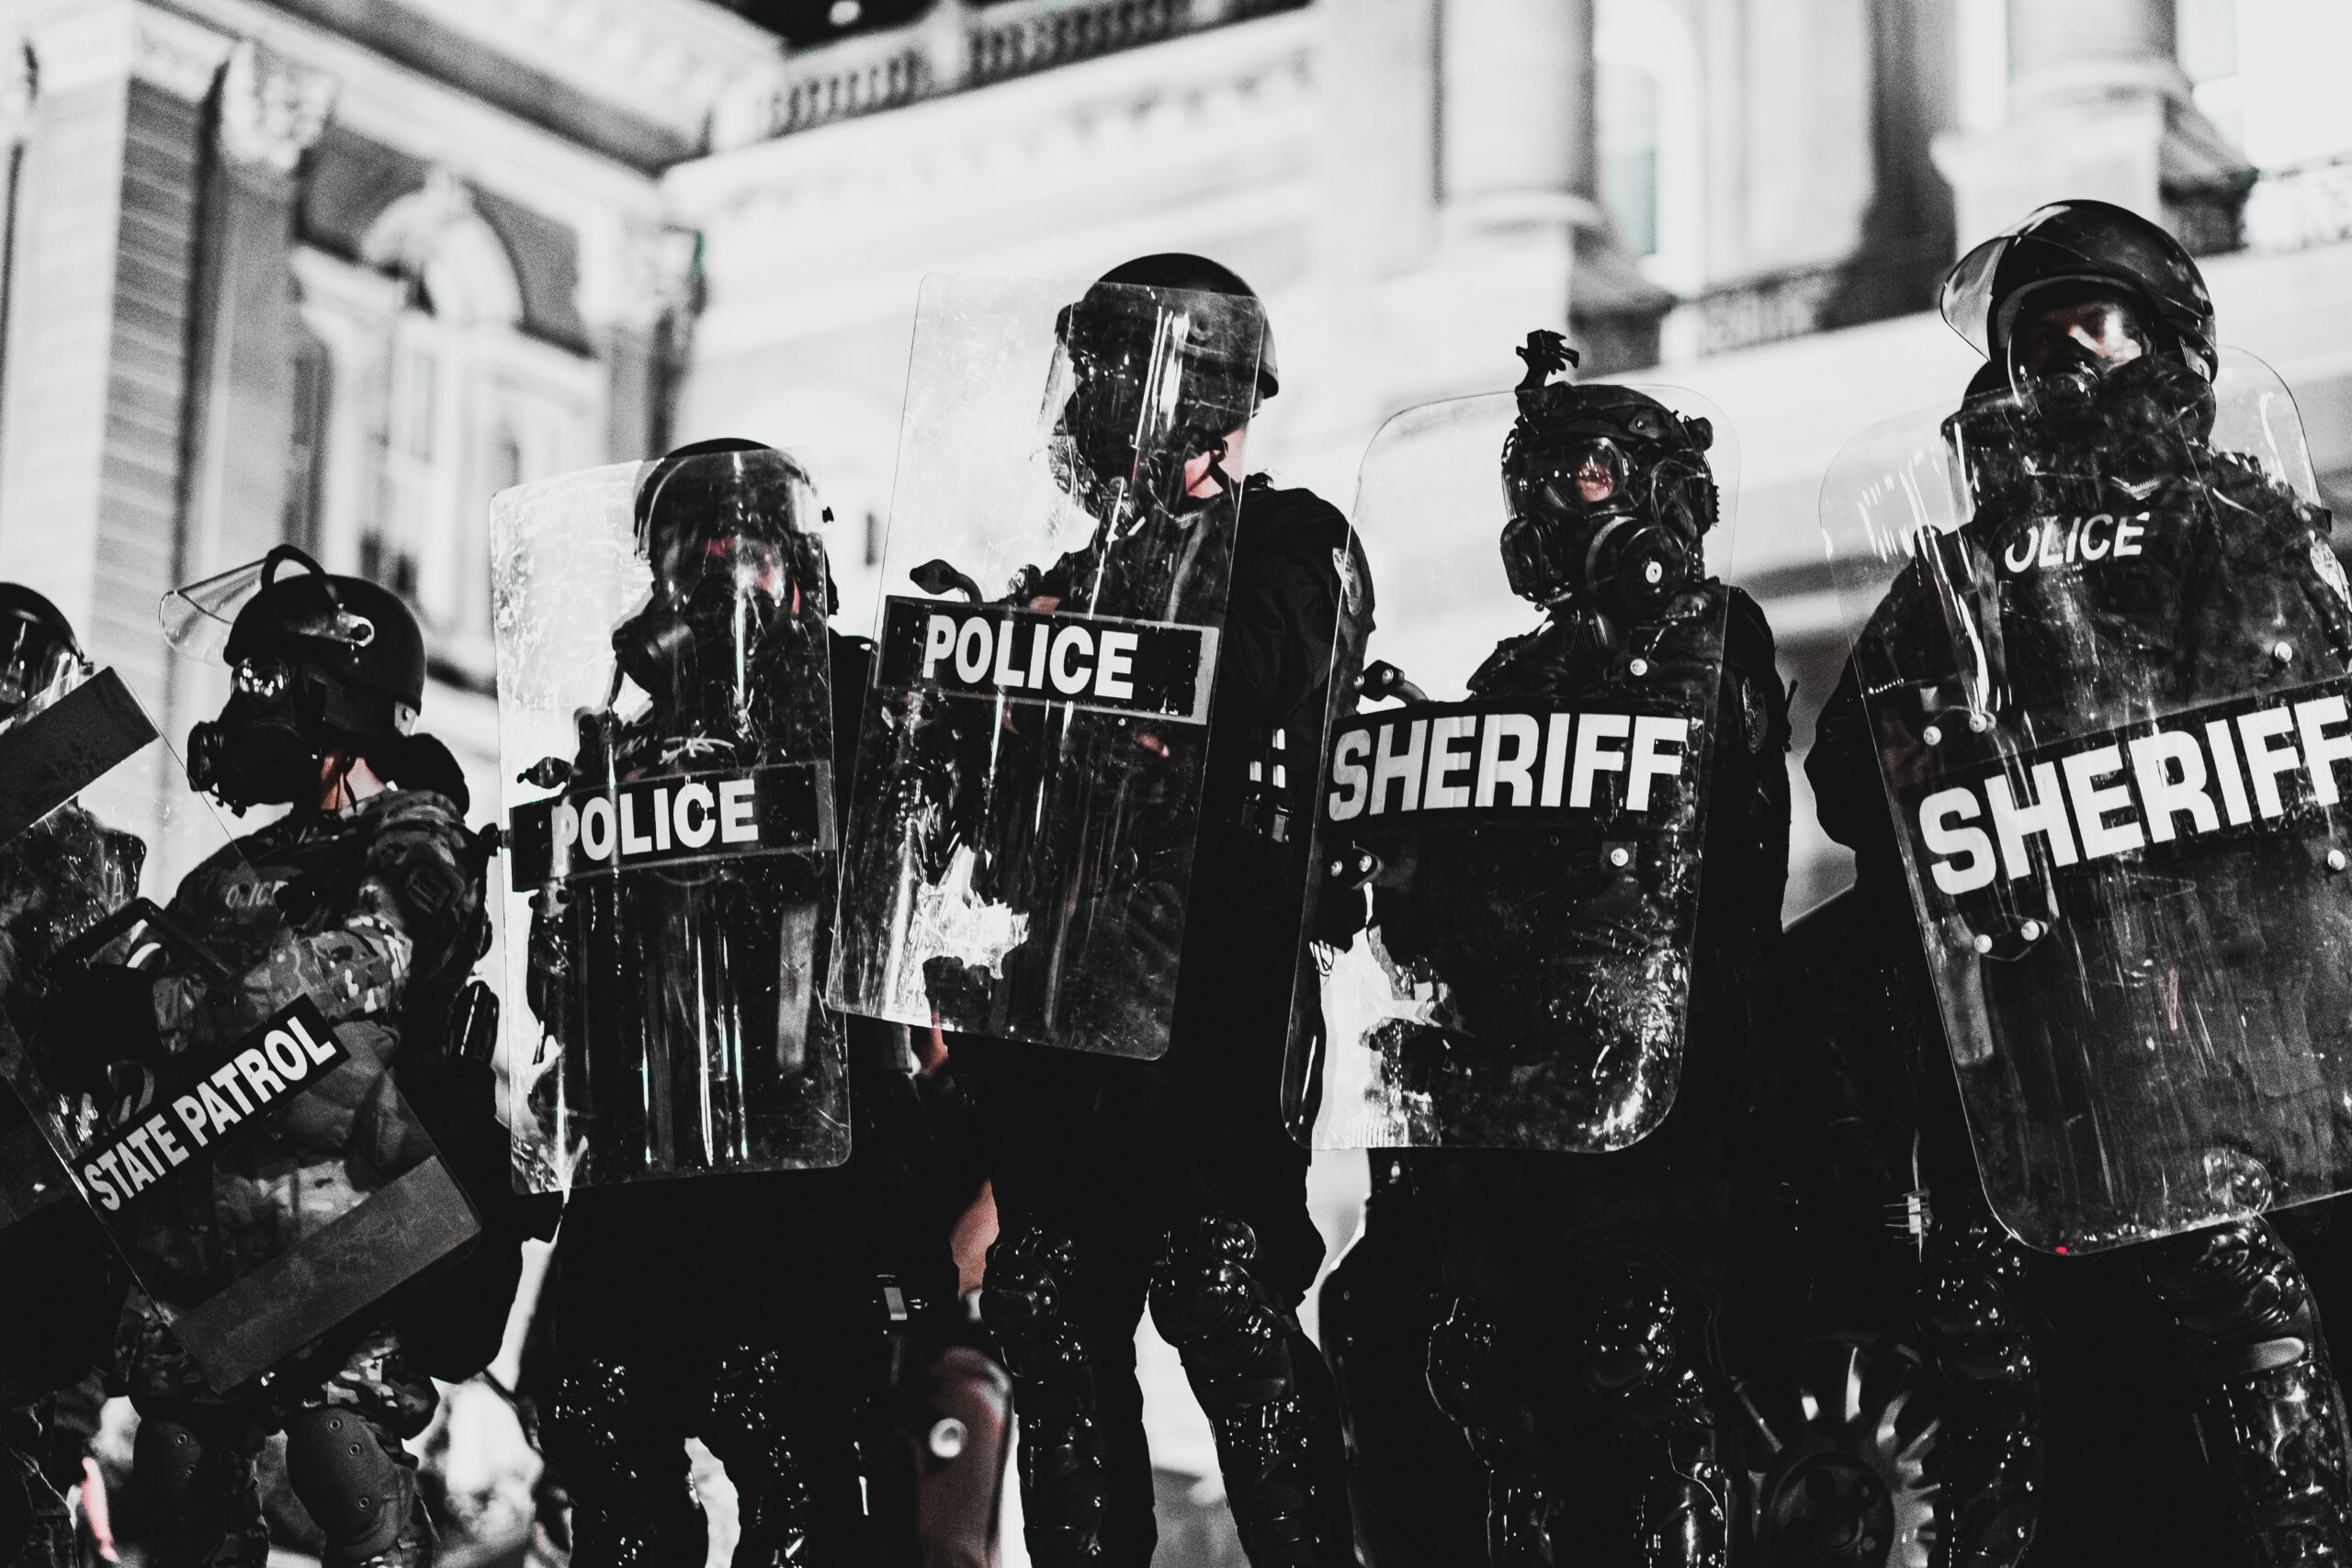 GOP lawmakers' actions speak louder than their words on law enforcement